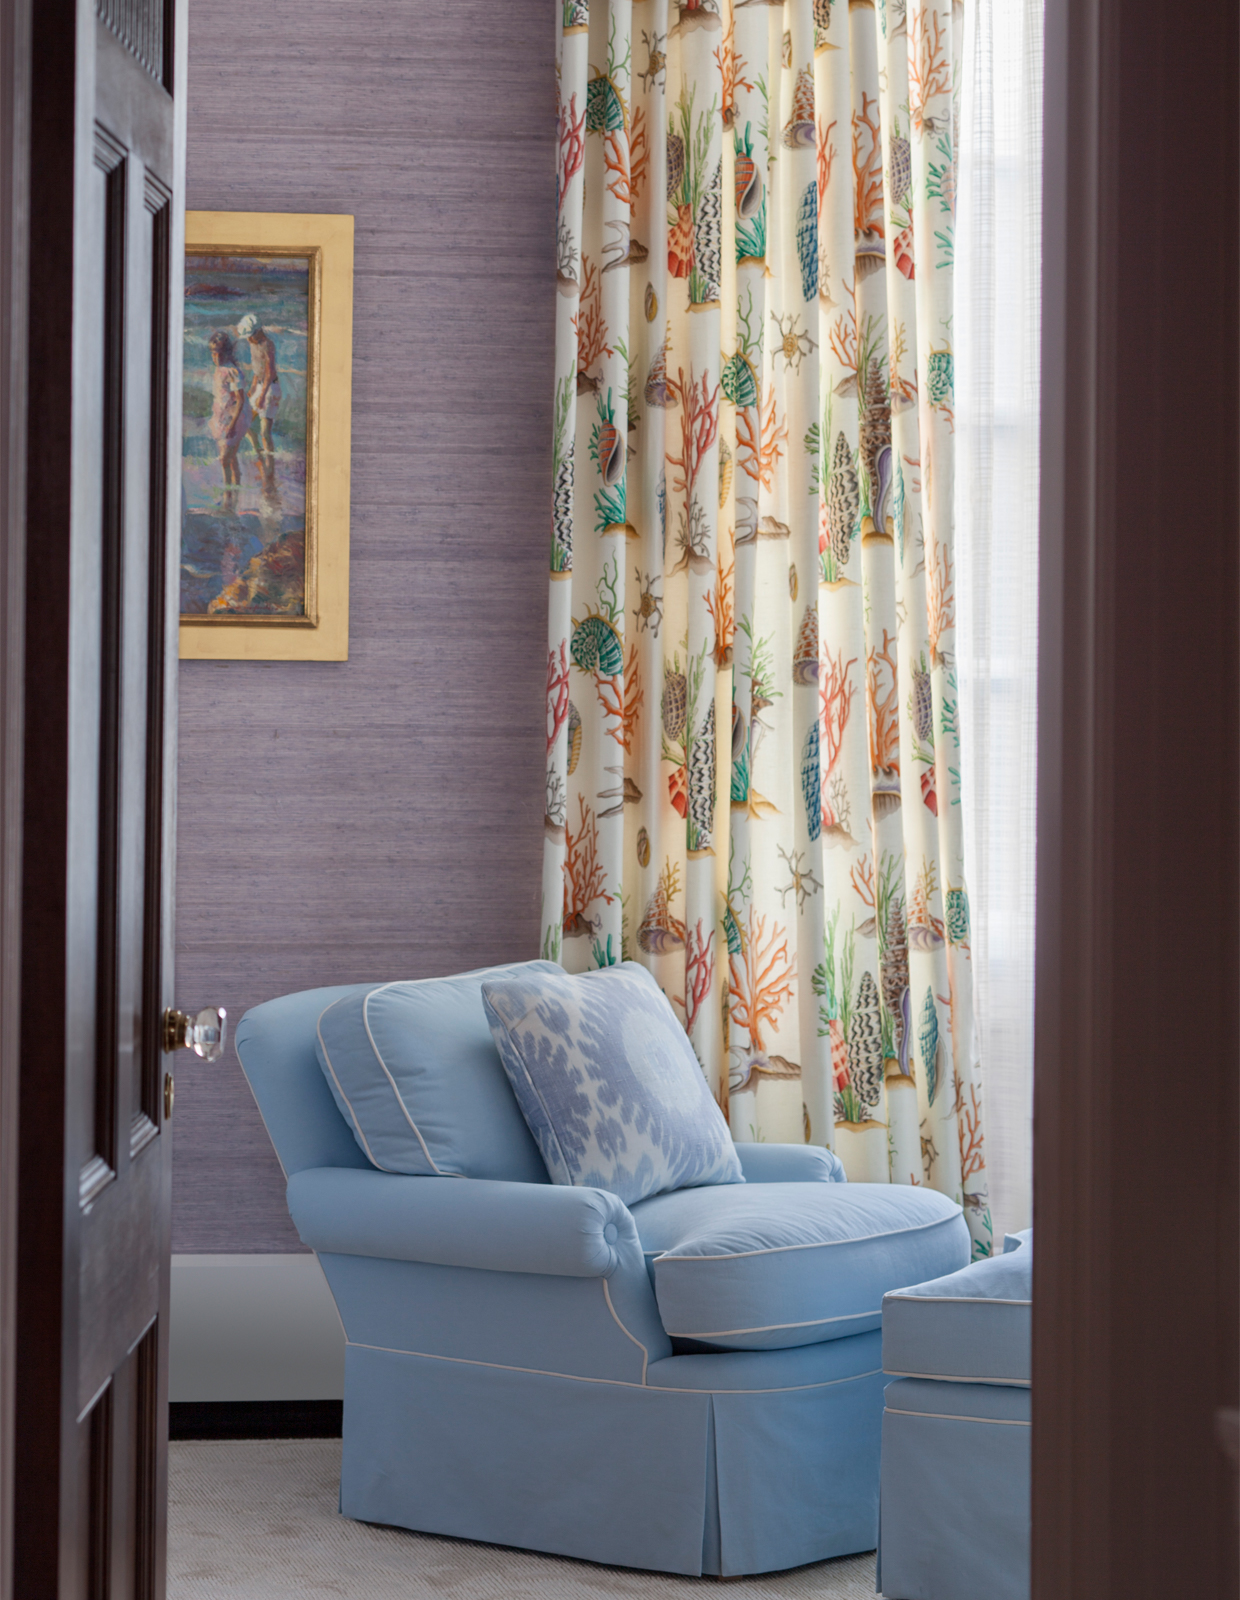 blue chair with curtains